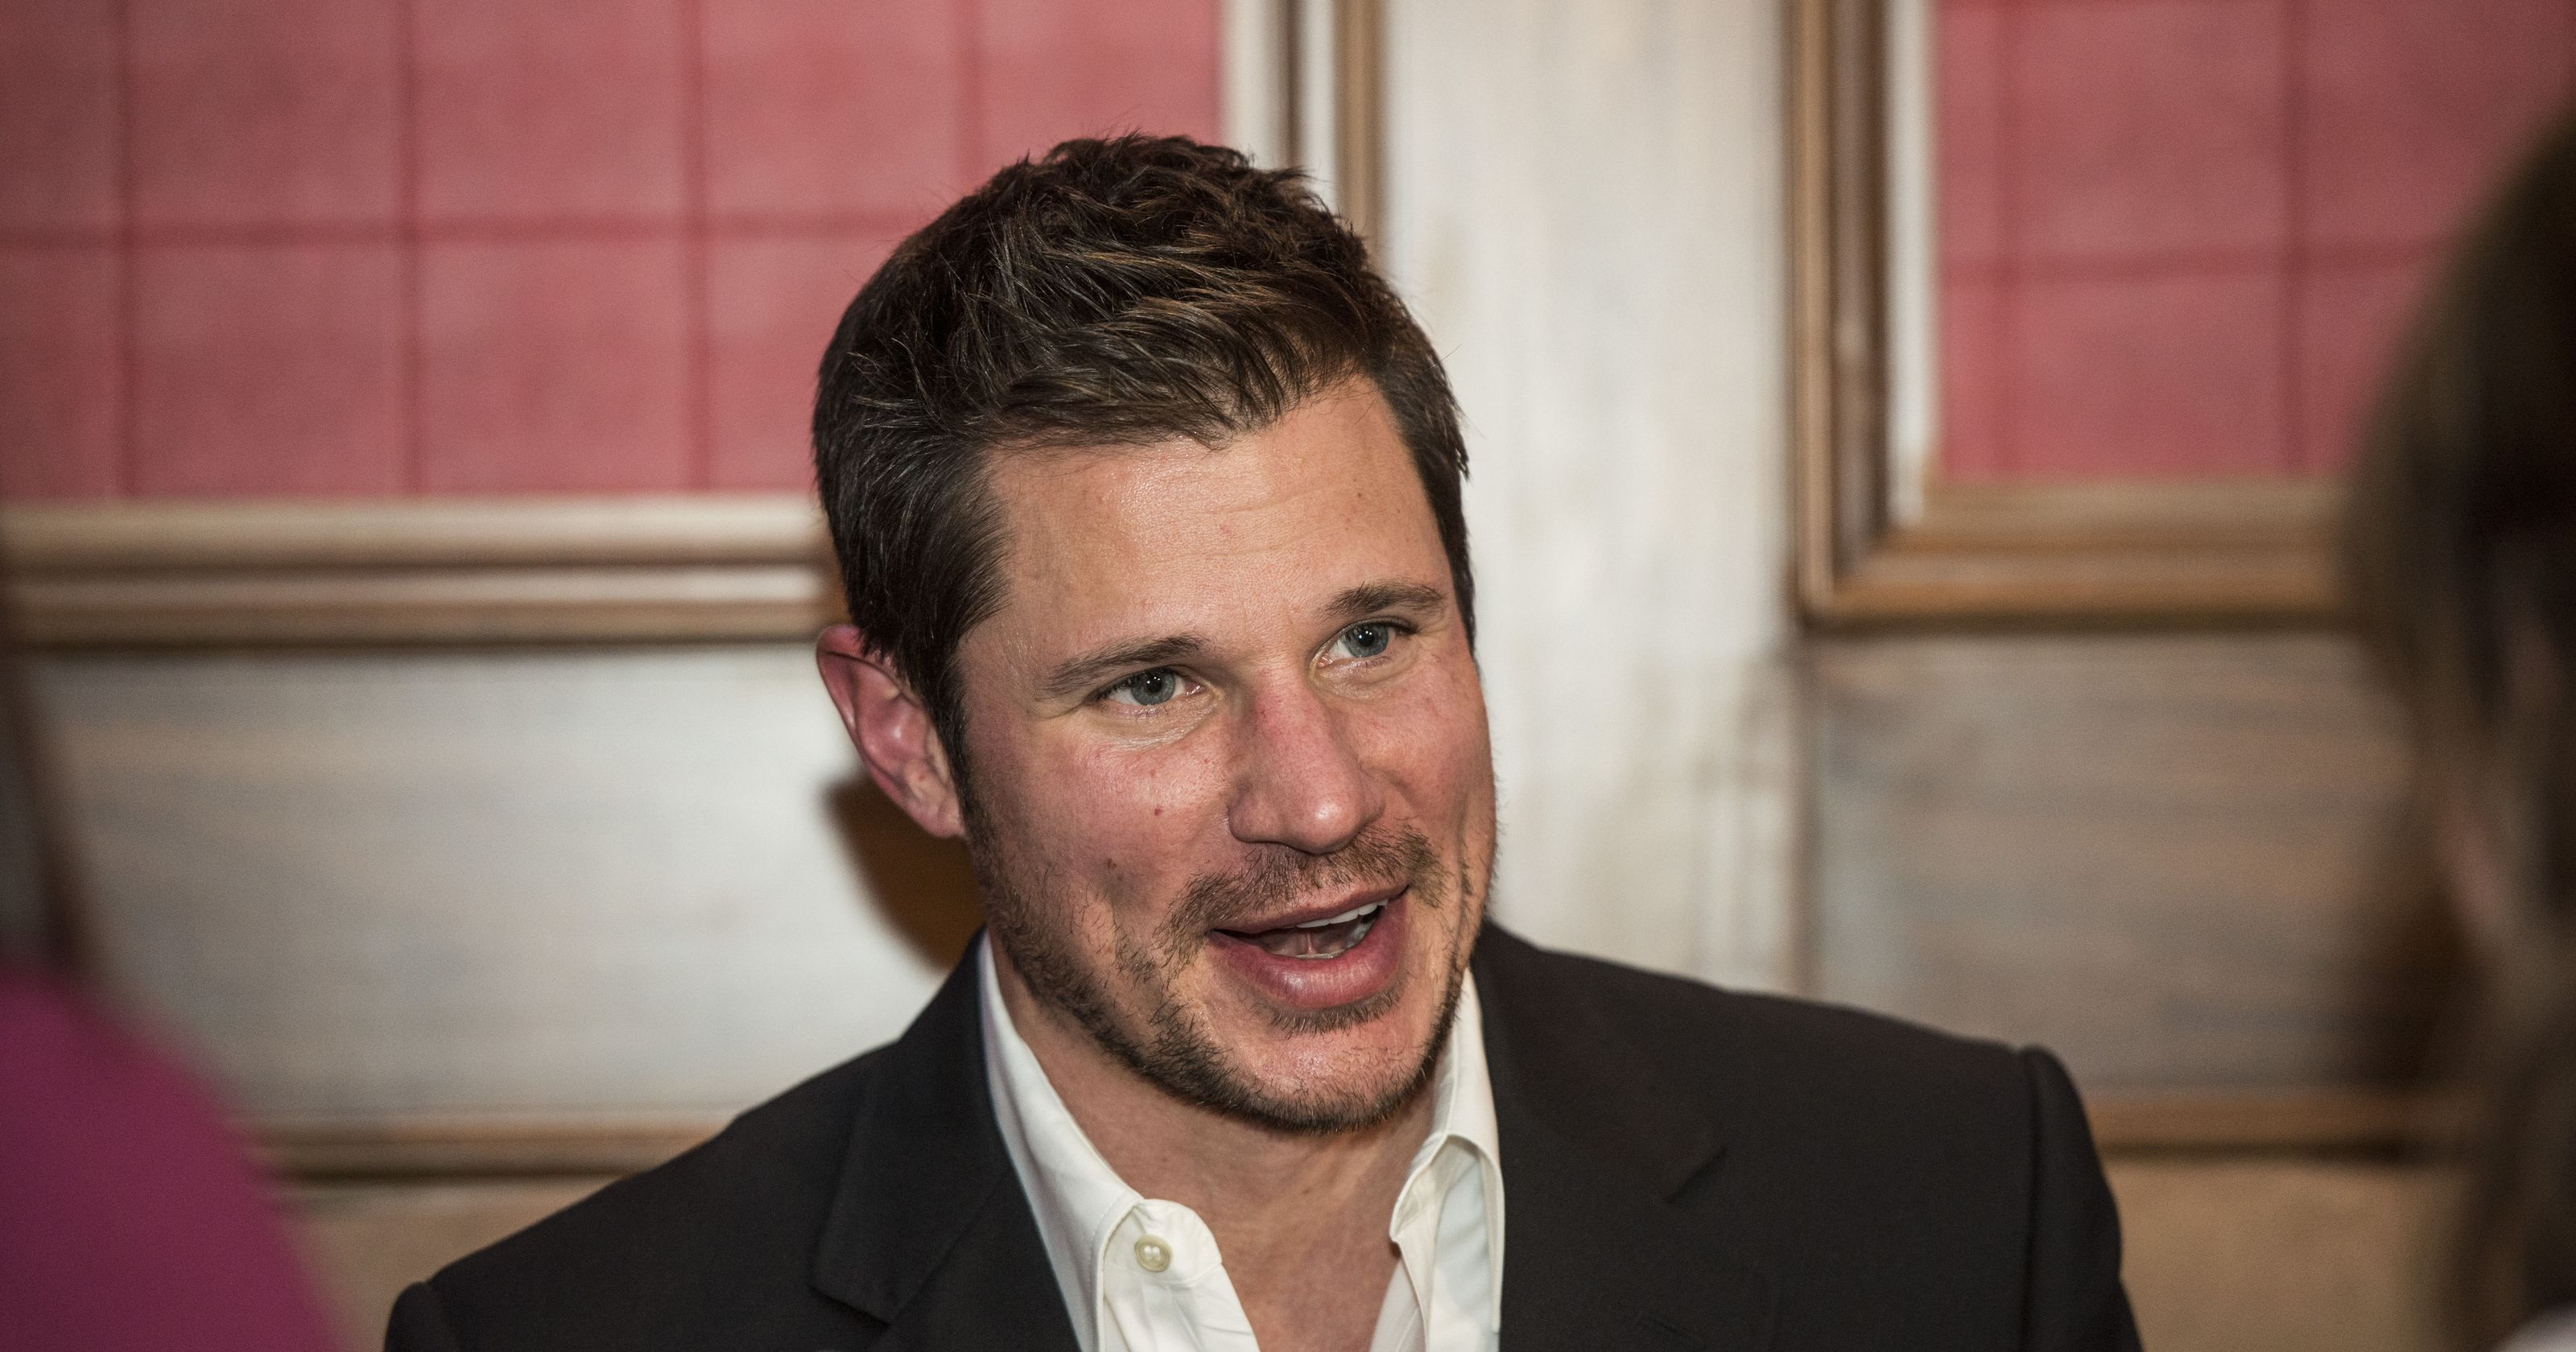 Nick Lachey Images